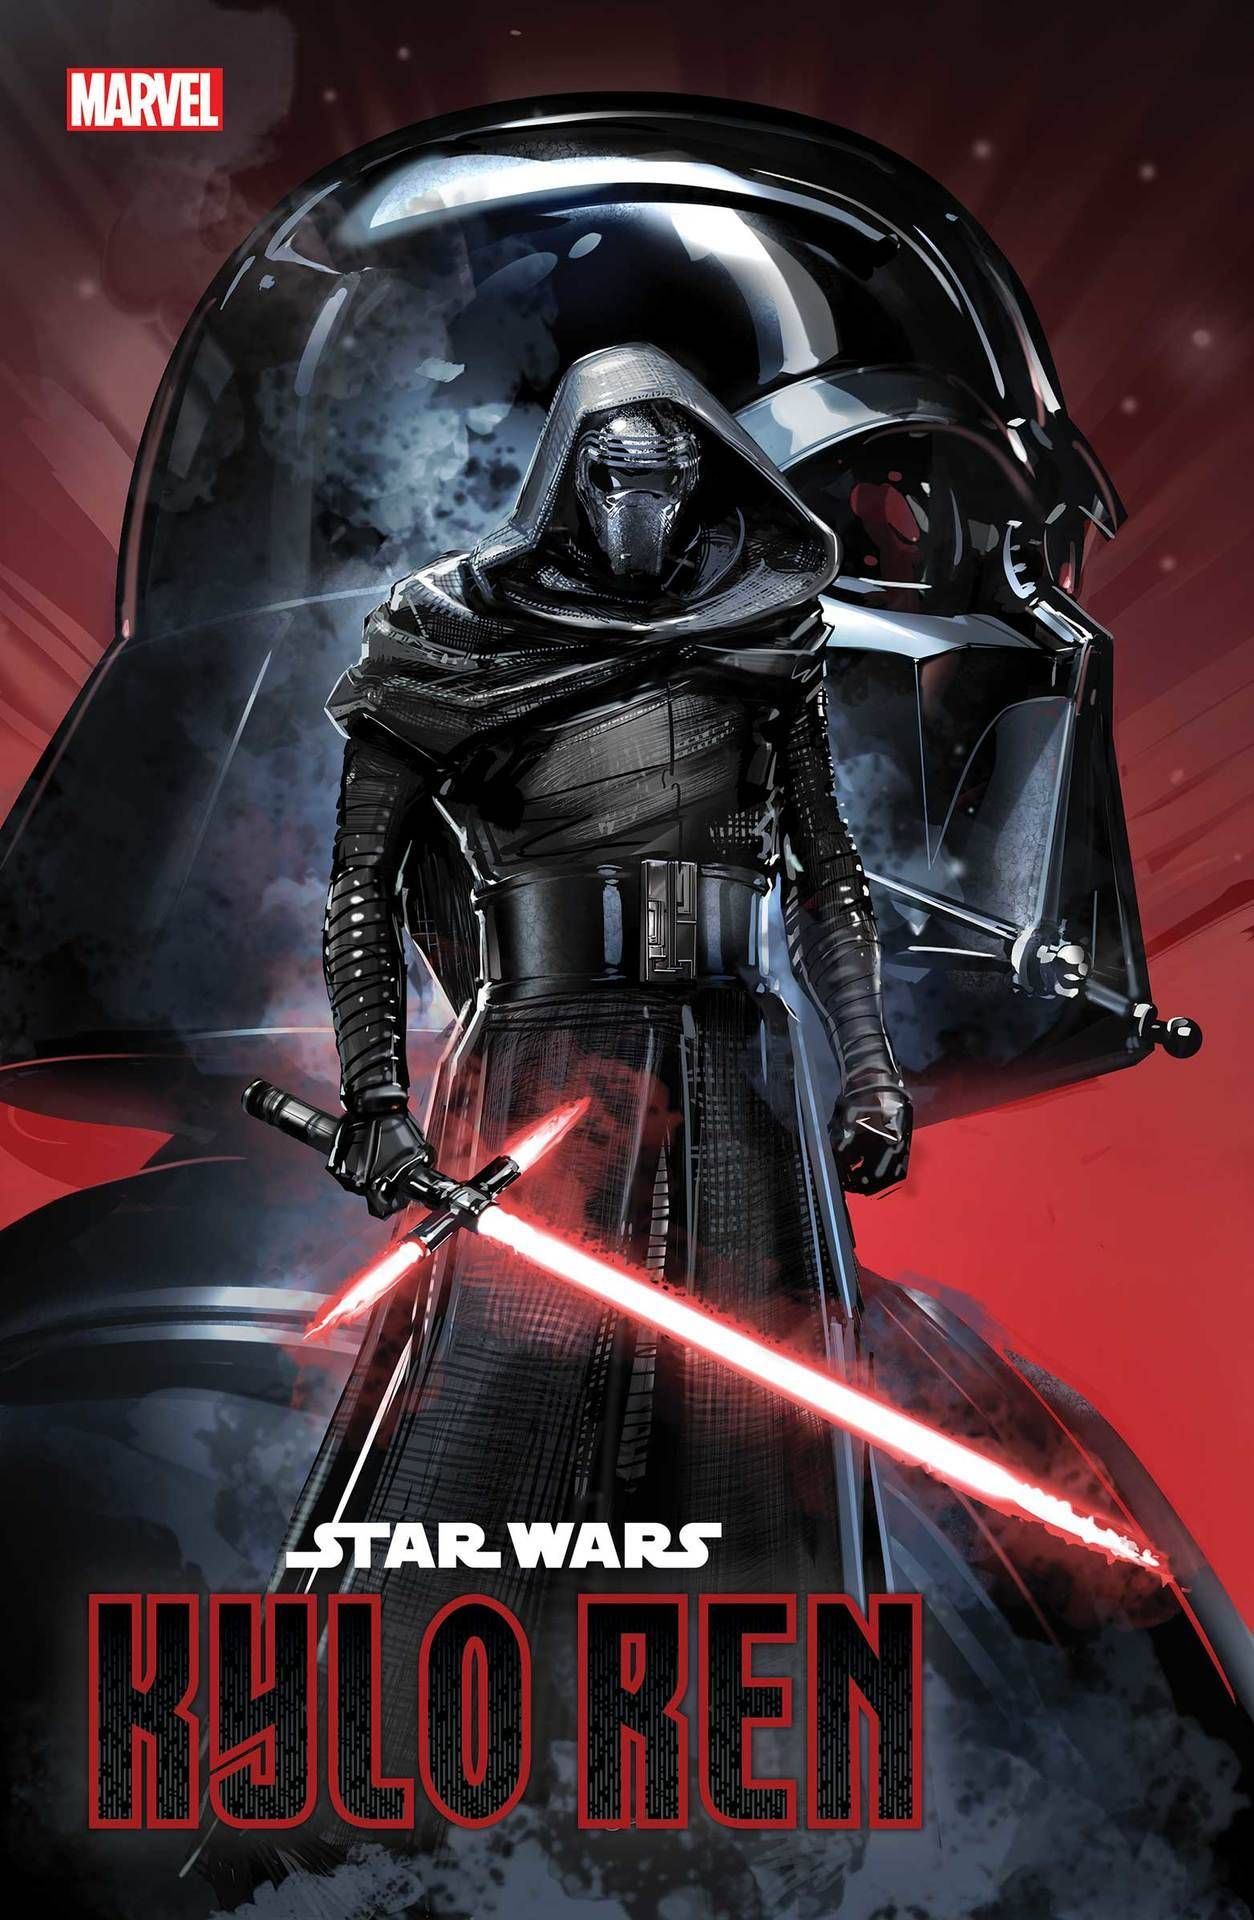 Star Wars The Rise Of Kylo Ren 1 Of 4 Charles Soule W Will Sliney A Cover By Clayton Crain With Ben Star Wars Comics Star Wars Art Star Wars Books